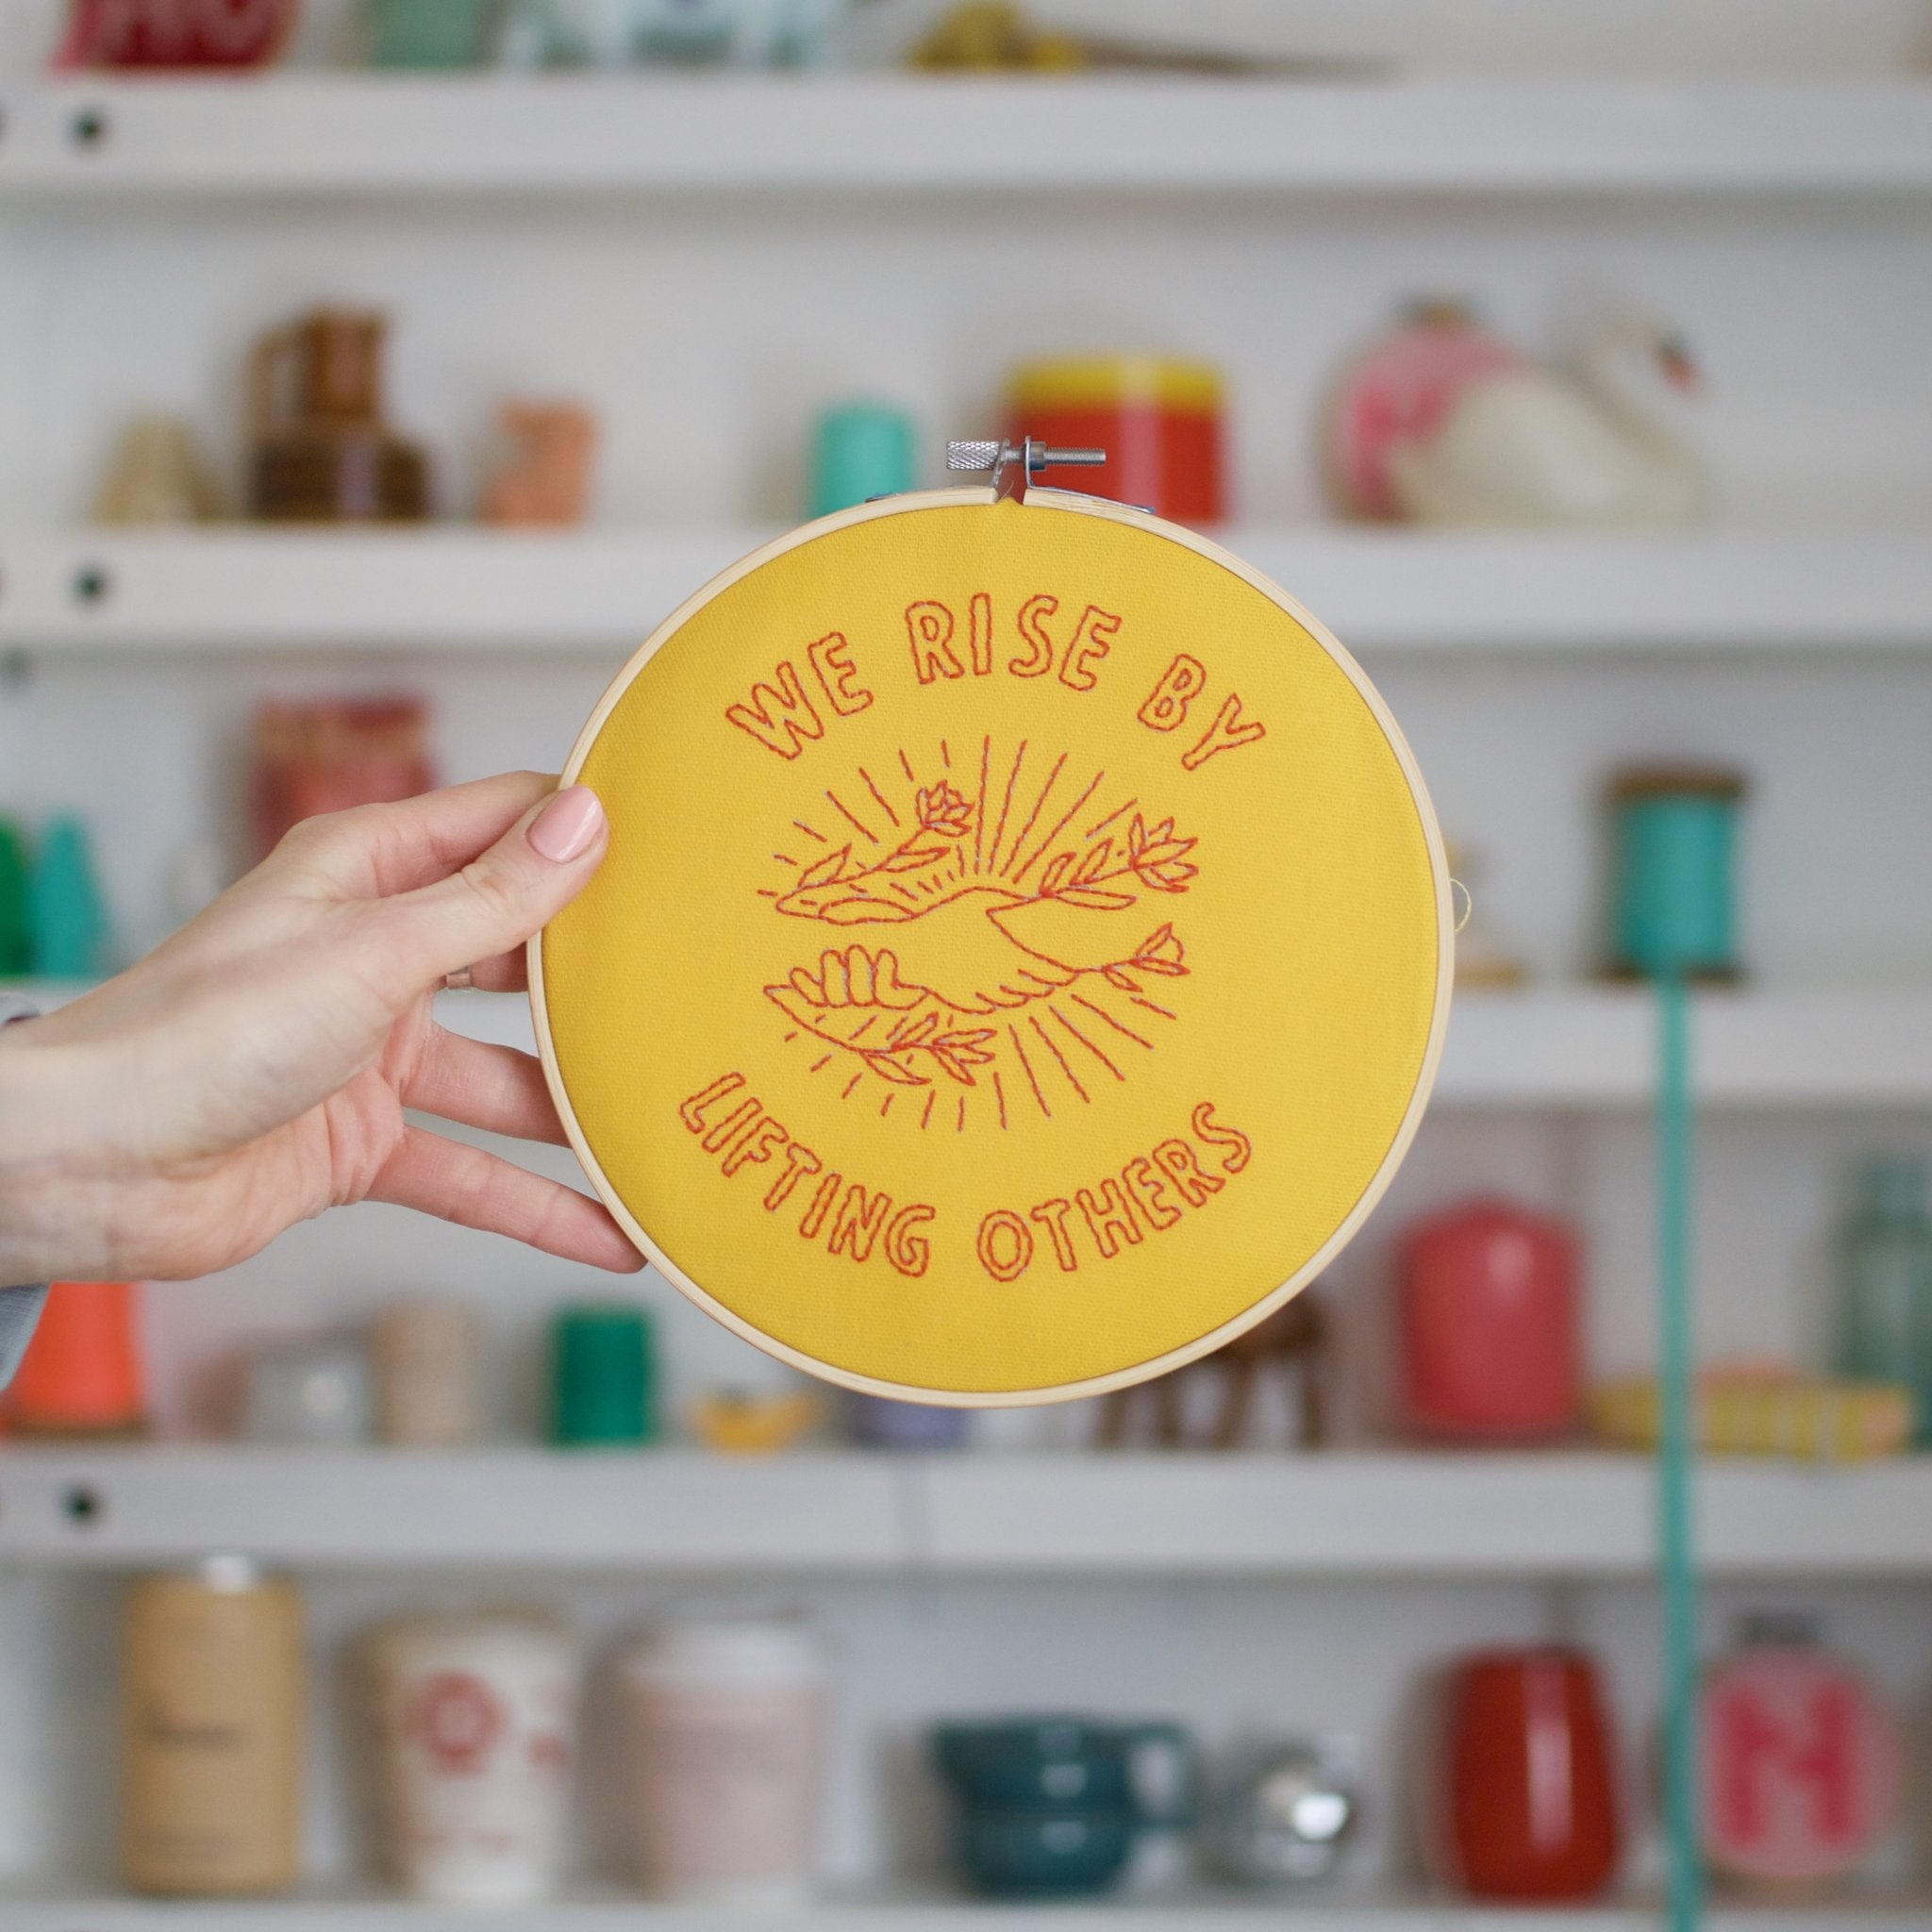 We Rise By Lifting Others Yellow Embroidery Hoop